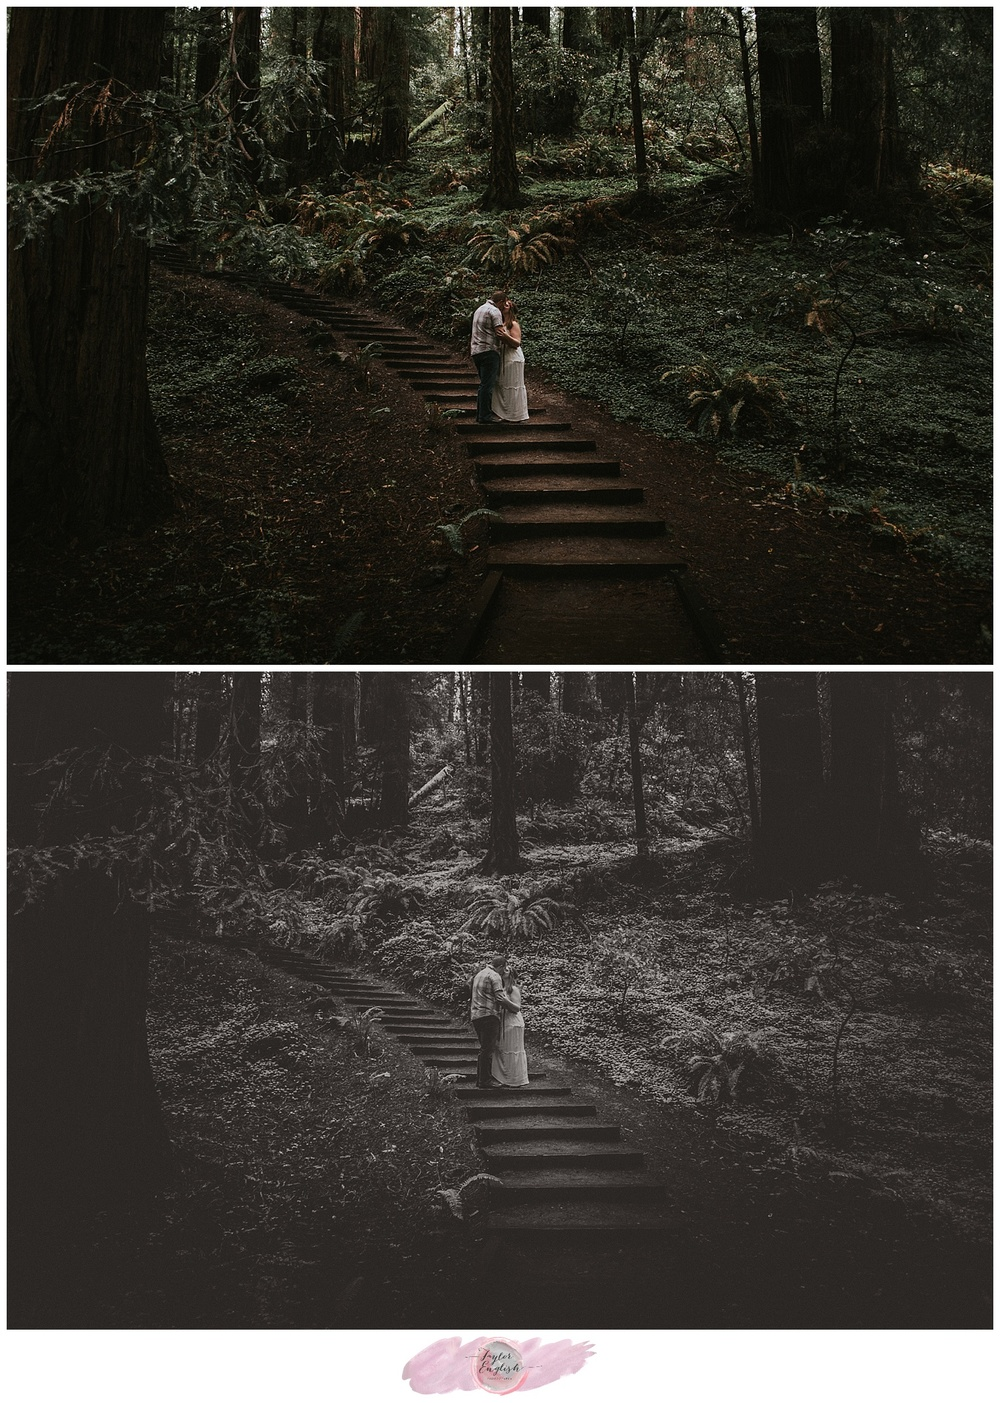 Could this be more reminiscent of a fairytale?!